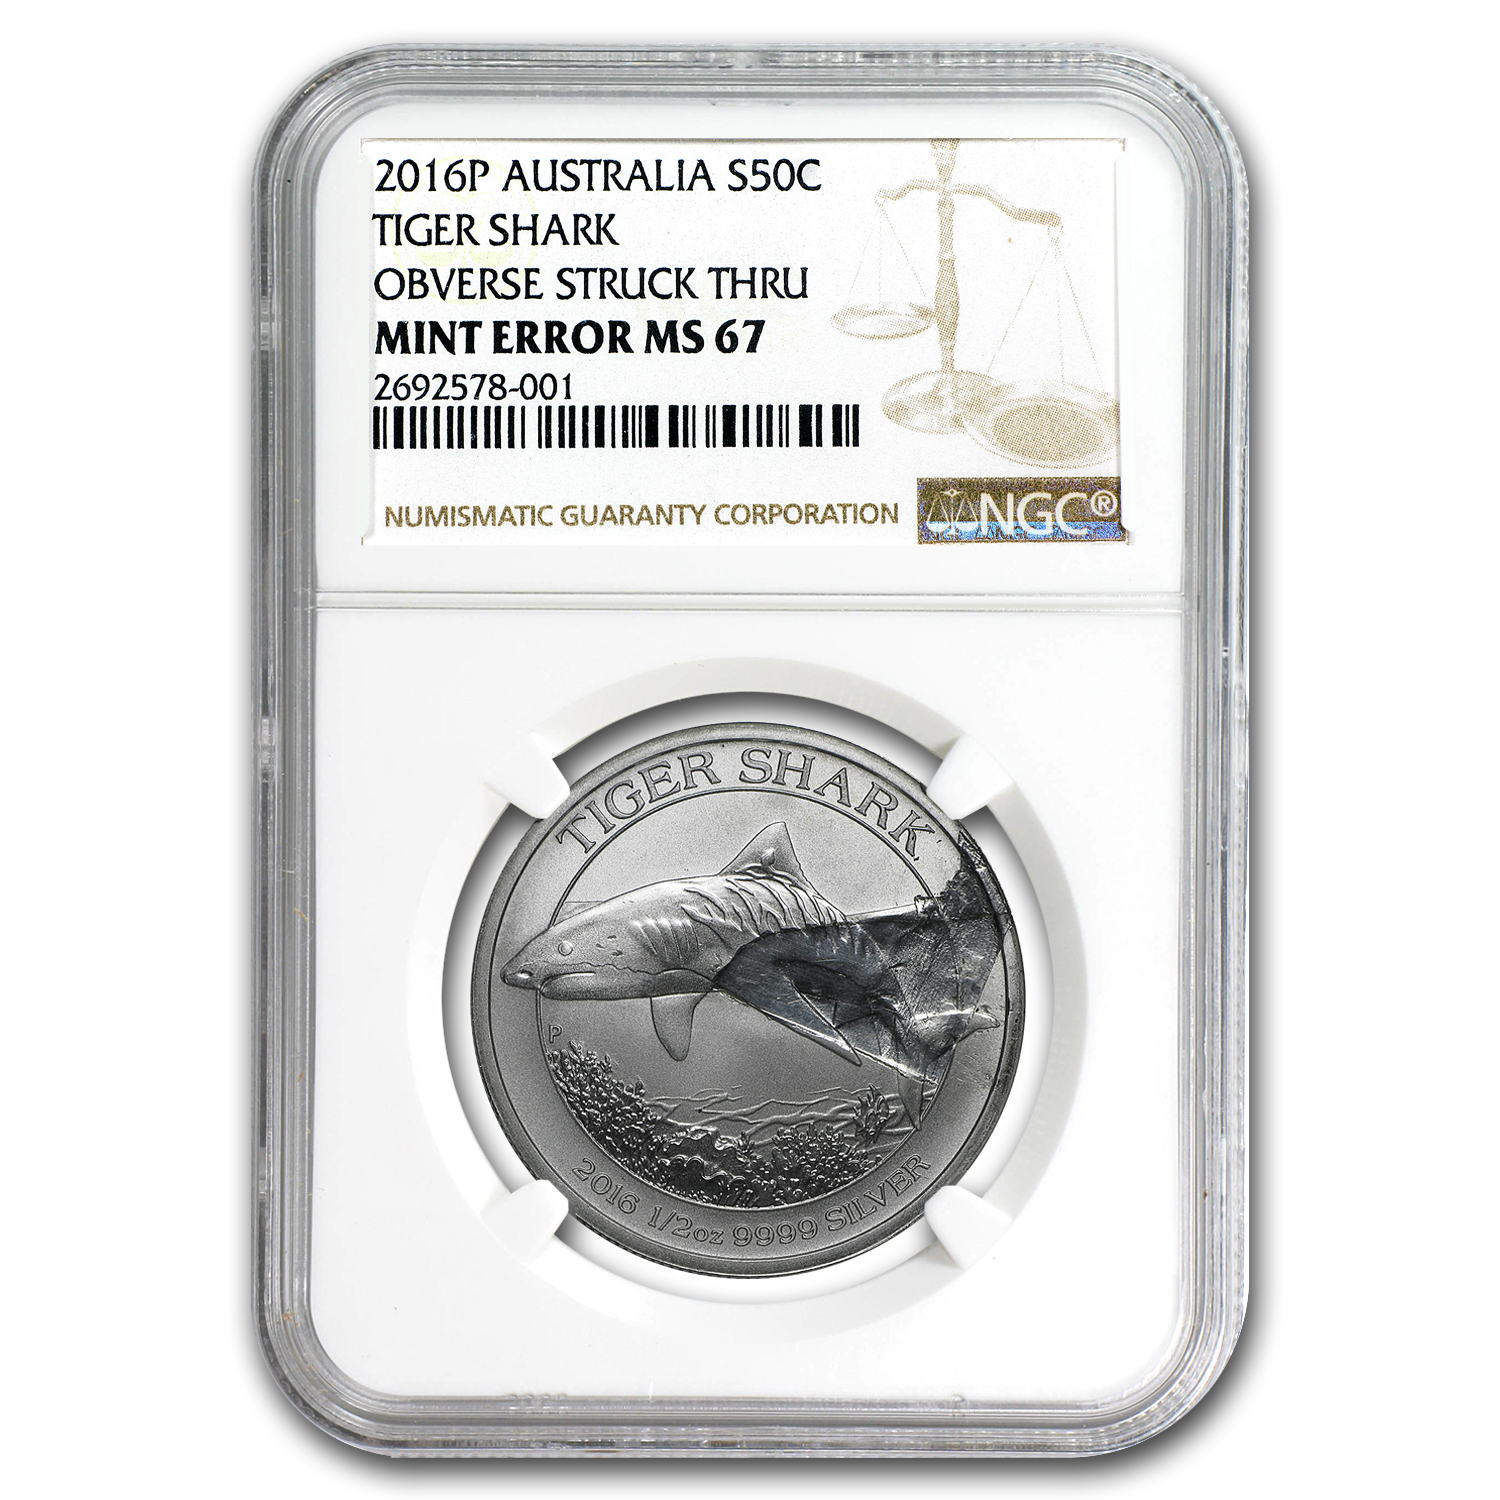 2016 Australia 1/2 oz Silver Tiger Shark MS-67 NGC (Mint Error)